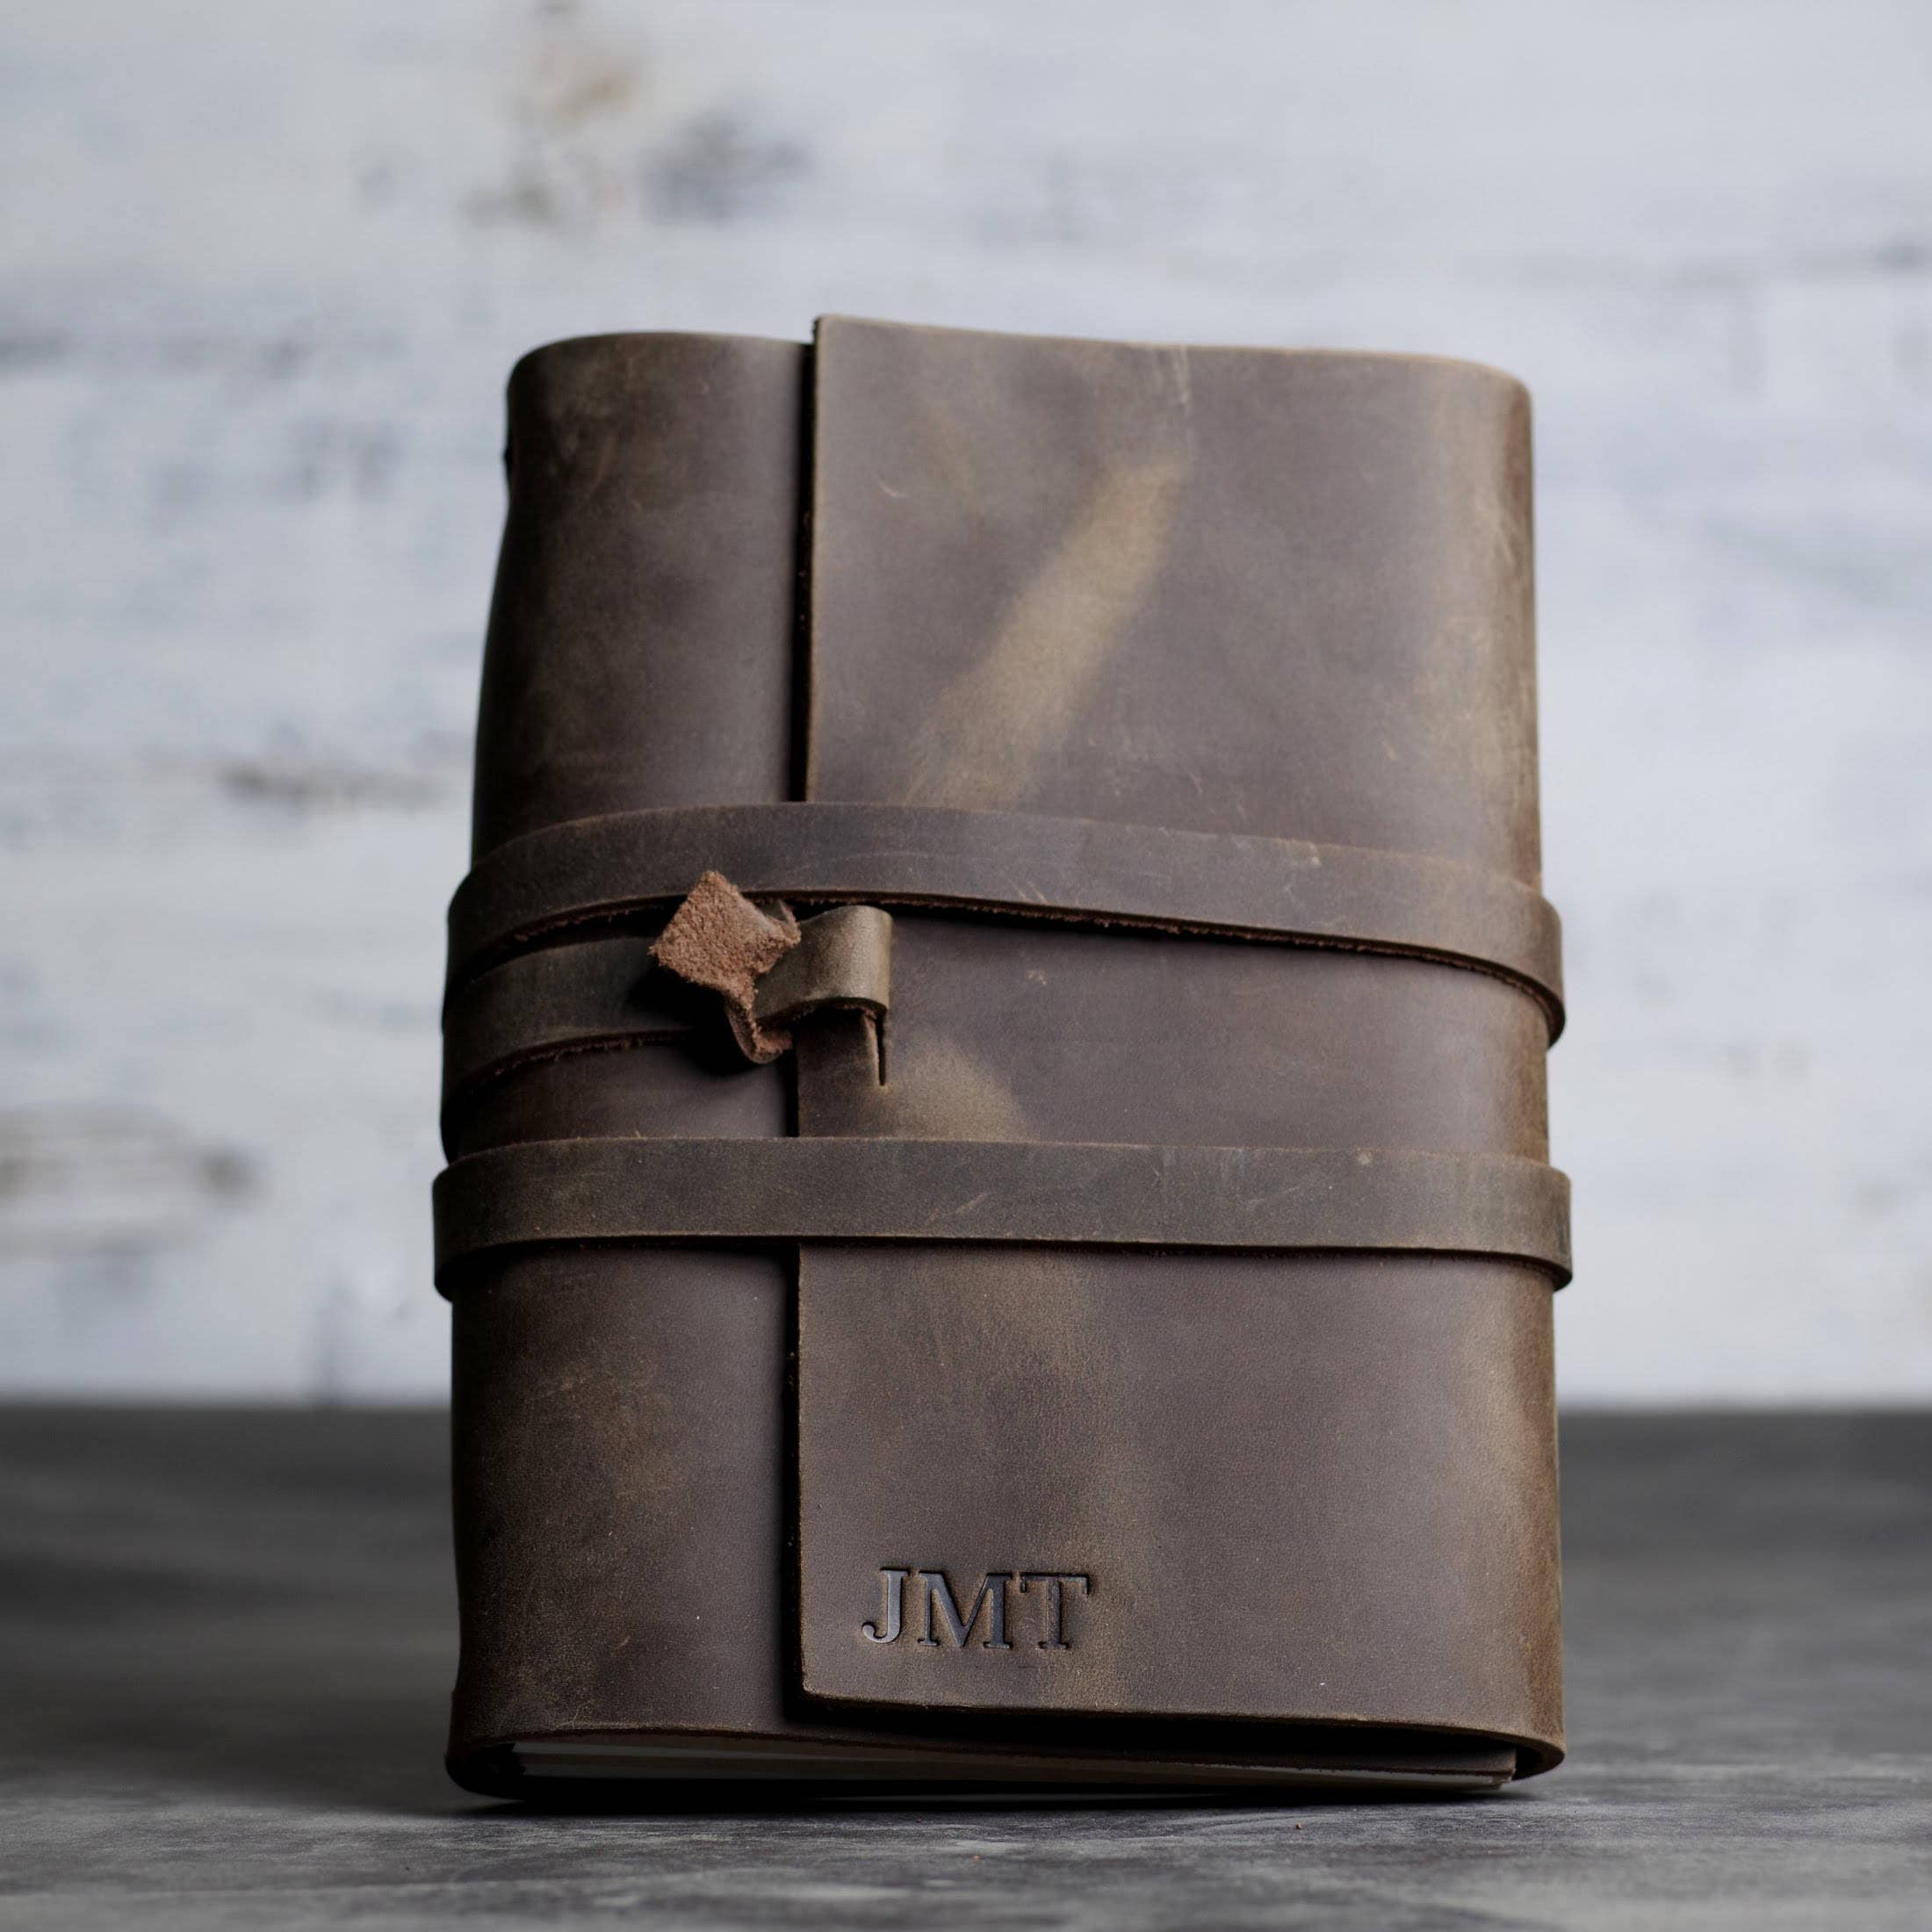 REFILLABLE Personalized Premium Leather Journal Notebook or Sketchbook | Rustic Brown, Saddle Tan, Dark Brown                                                                BBABBBBdBBB BBBbBBBBByBBBB BOxAndPine         Ad from shop OxAndPine                               5 out of 5 stars                                                                                                                                                                                                                                                          (3,897)                 3,897 reviews                                                                                   Sale Price CA$49.48                                                                   CA$49.48                                                                             CA$98.97                                                              Original Price CA$98.97                                                                                               (50% off)